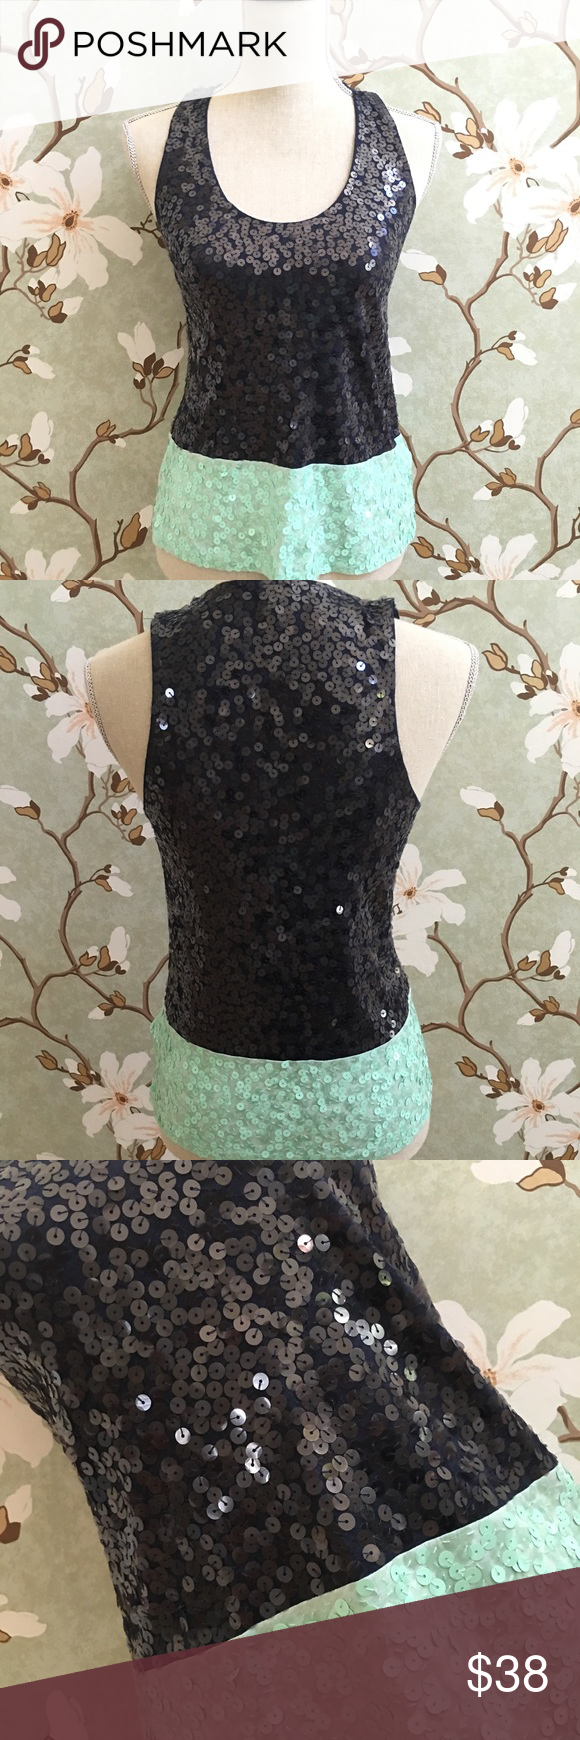 J.Crew Sequined Navy & Mint Color-Blocked Tank J. Crew sequined navy and mint color-block sleeveless top. True to size, stretchy fit. NWOT and never worn. J. Crew Tops Tank Tops